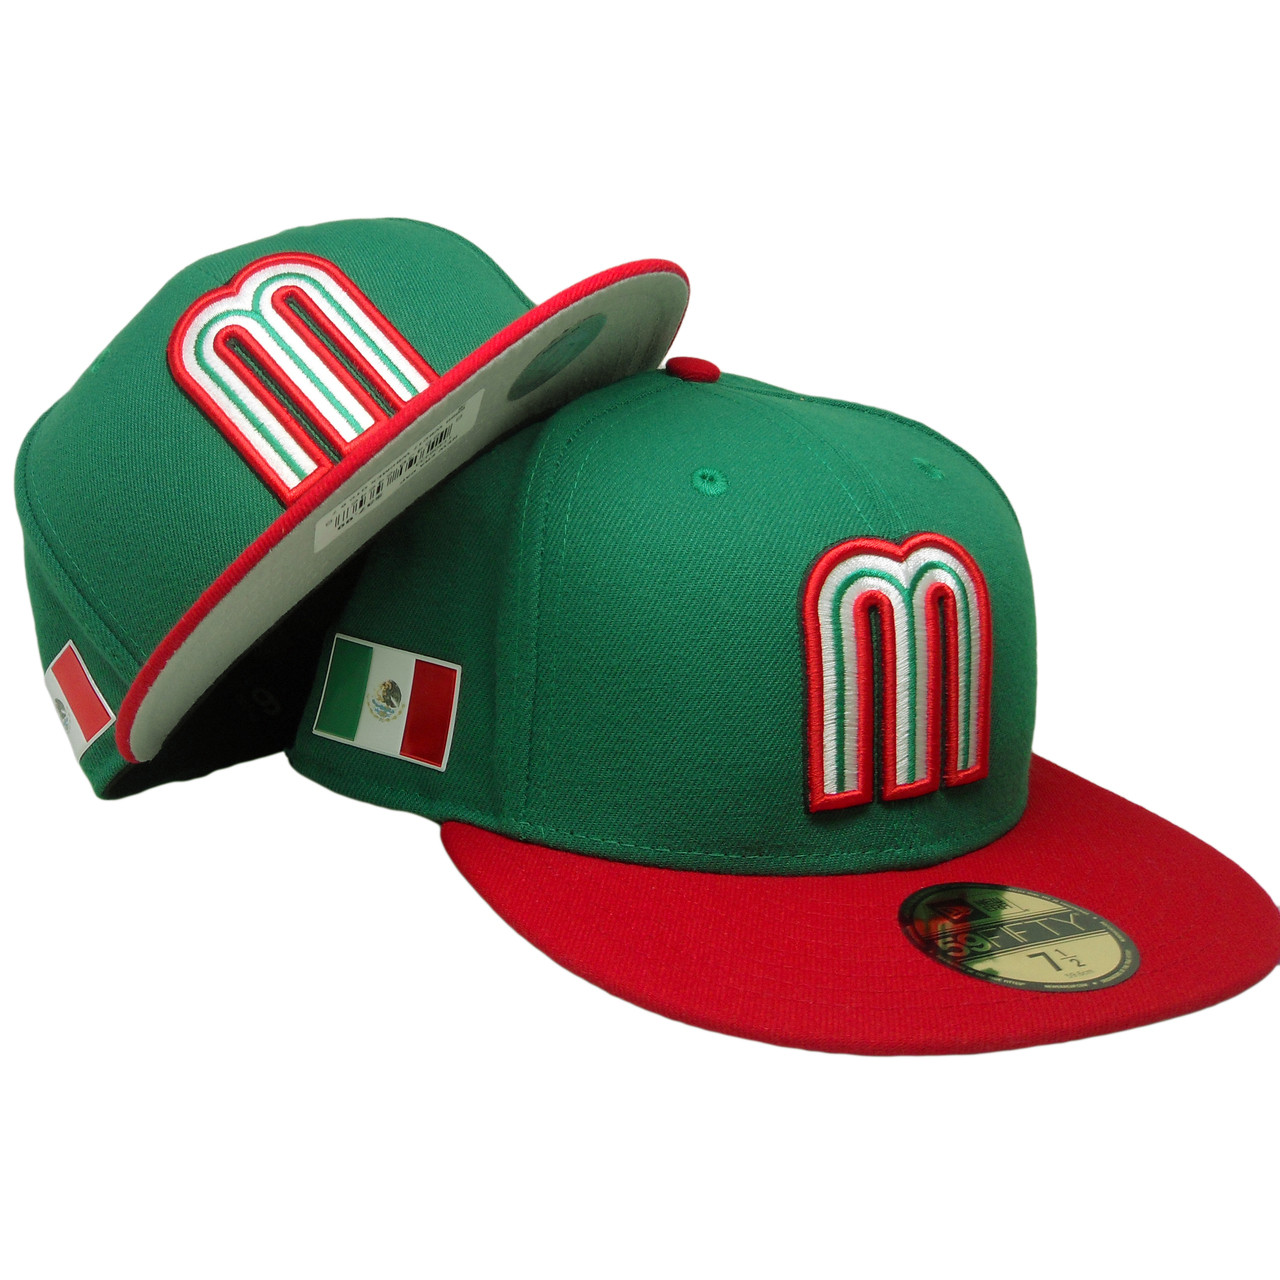 Mexico New Era 59Fifty WBC17 Fitted Hat - Green 7753dedafd23